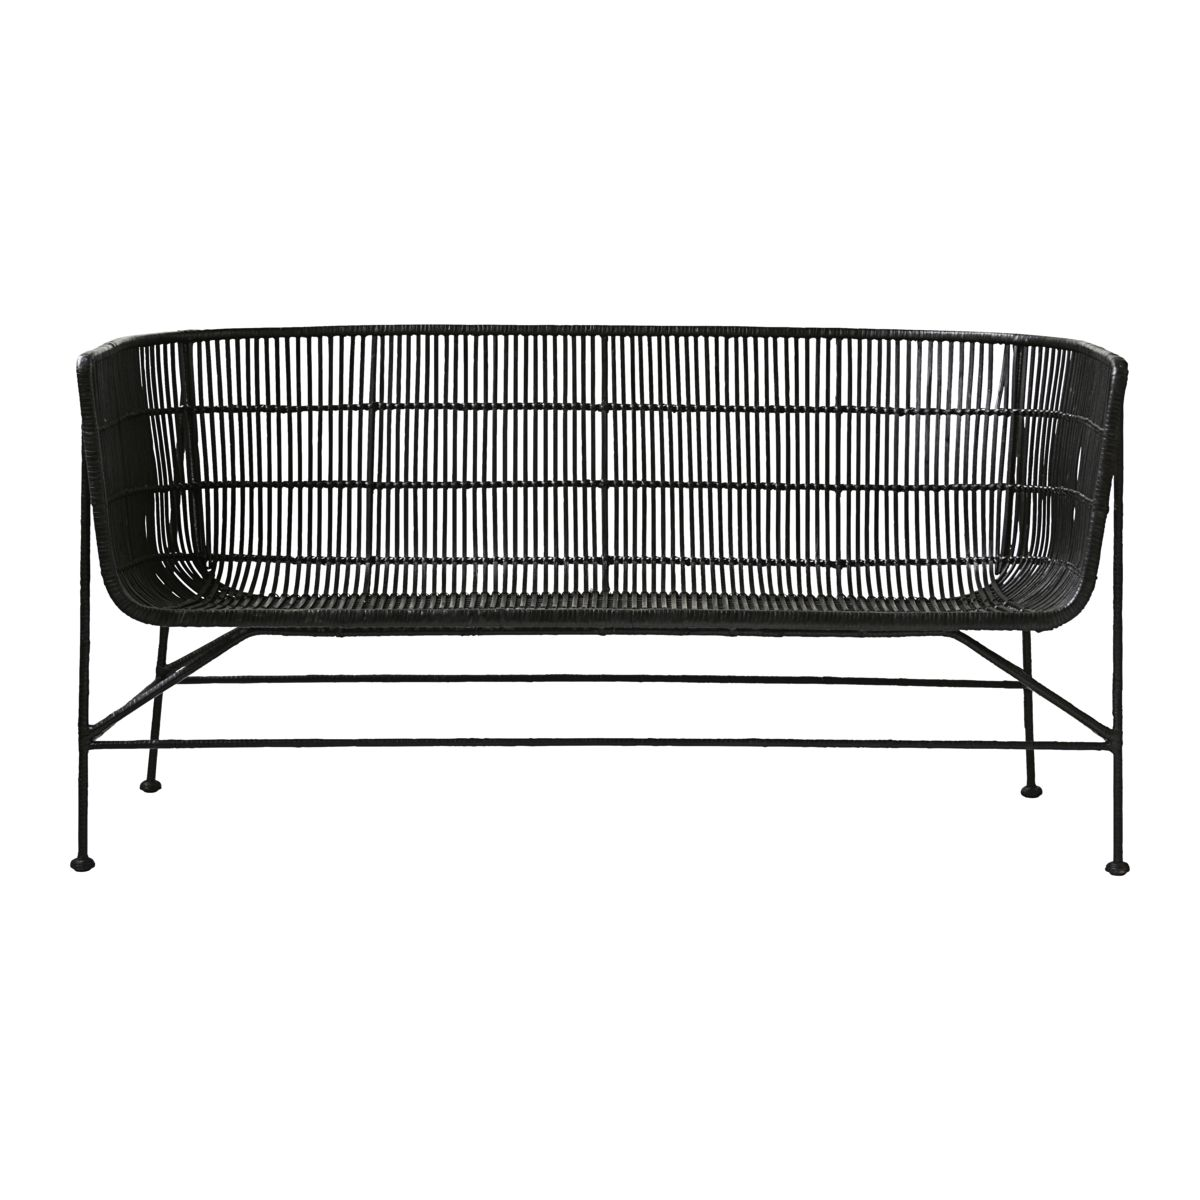 house doctor – House doctor coon sofa - sort rattan og metal - outlet model fra boboonline.dk